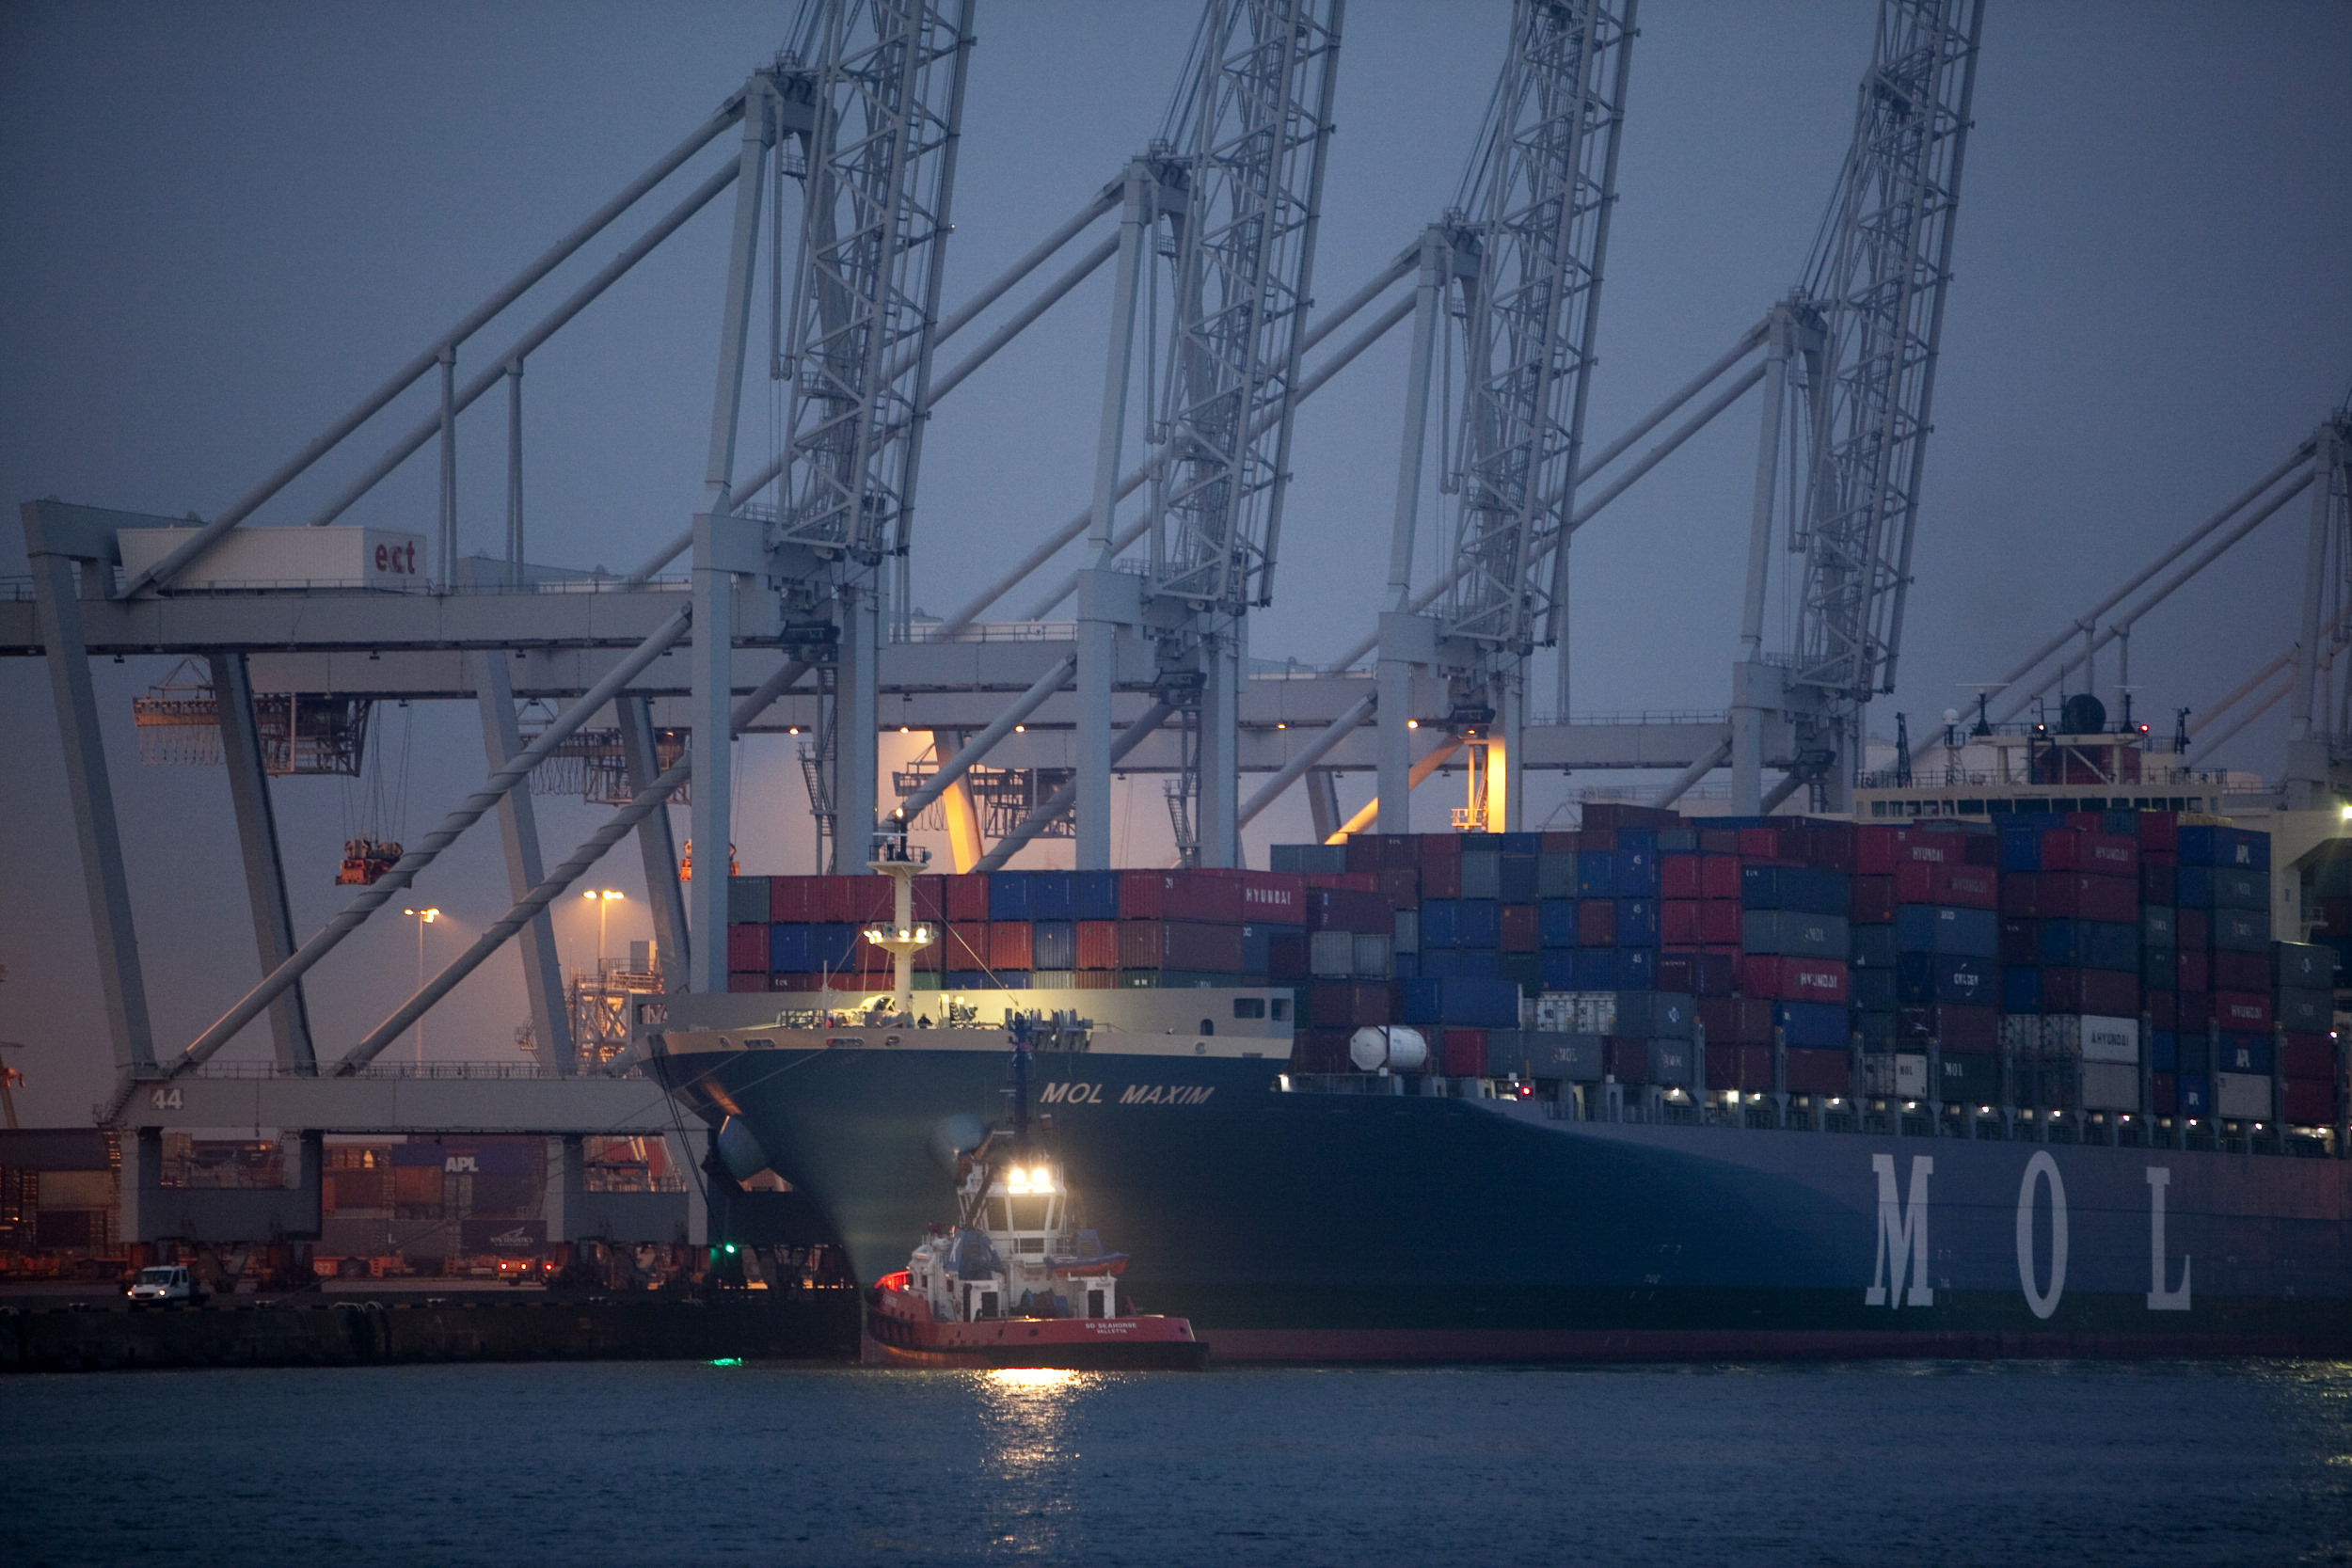 haven industrie nacht verlichting containerschip containers kranen water sleepboot donker